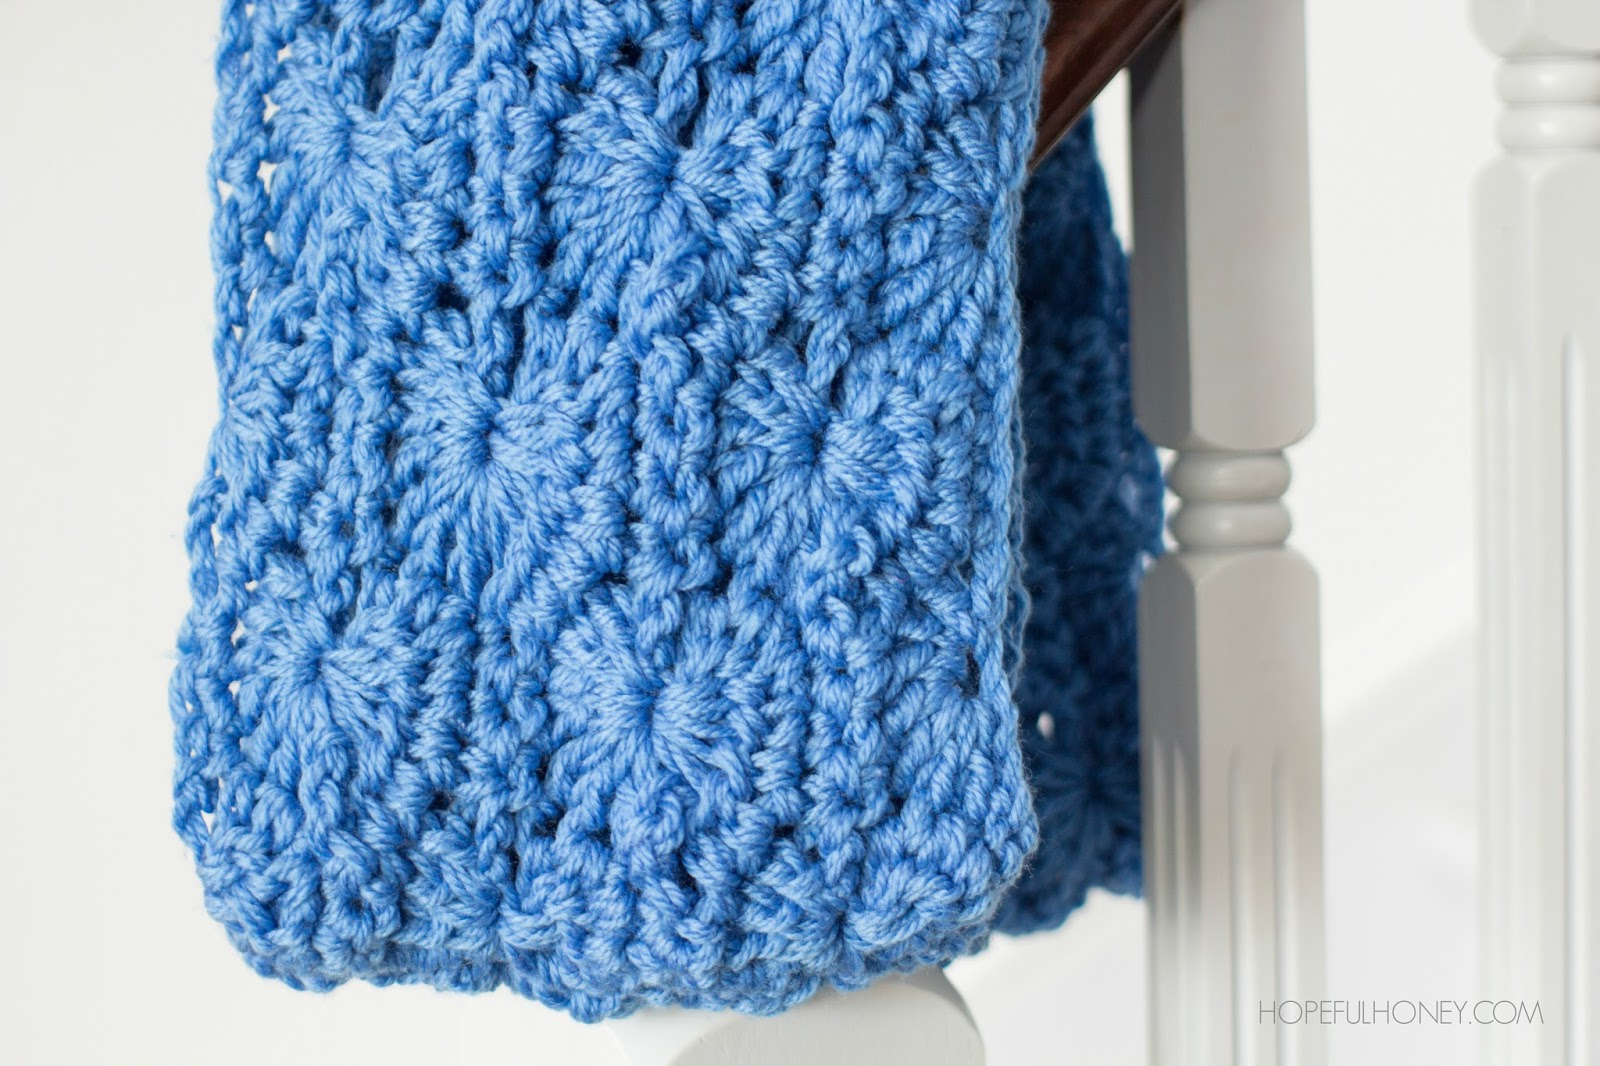 Free Crochet Pattern For Chunky Scarf : Hopeful Honey Craft, Crochet, Create: Chunky Infinity ...